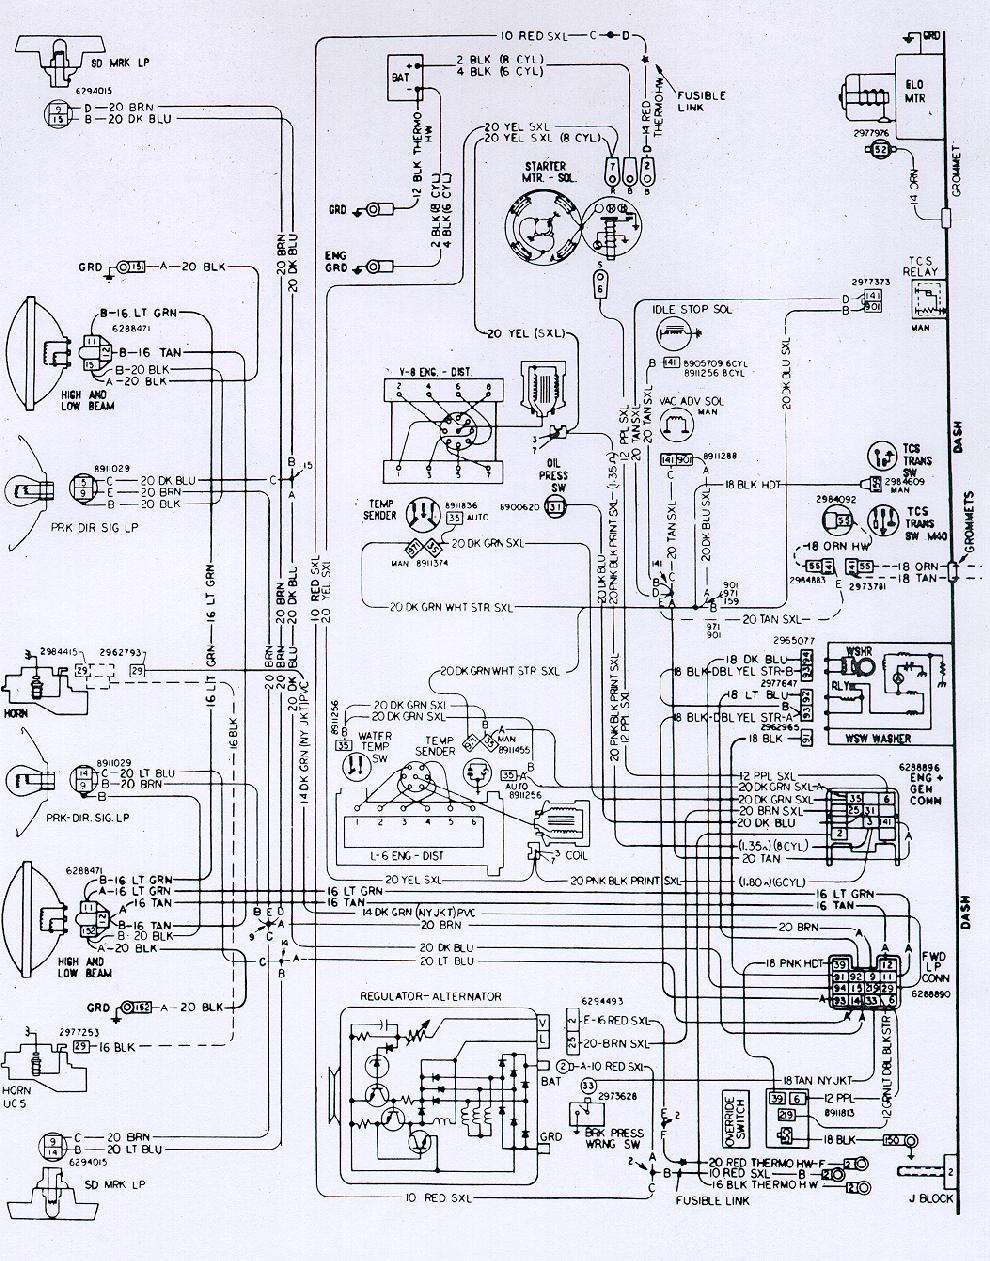 1980 camaro dash wiring diagram 1980 image wiring 1977 camaro wiring diagrams 1977 auto wiring diagram schematic on 1980 camaro dash wiring diagram